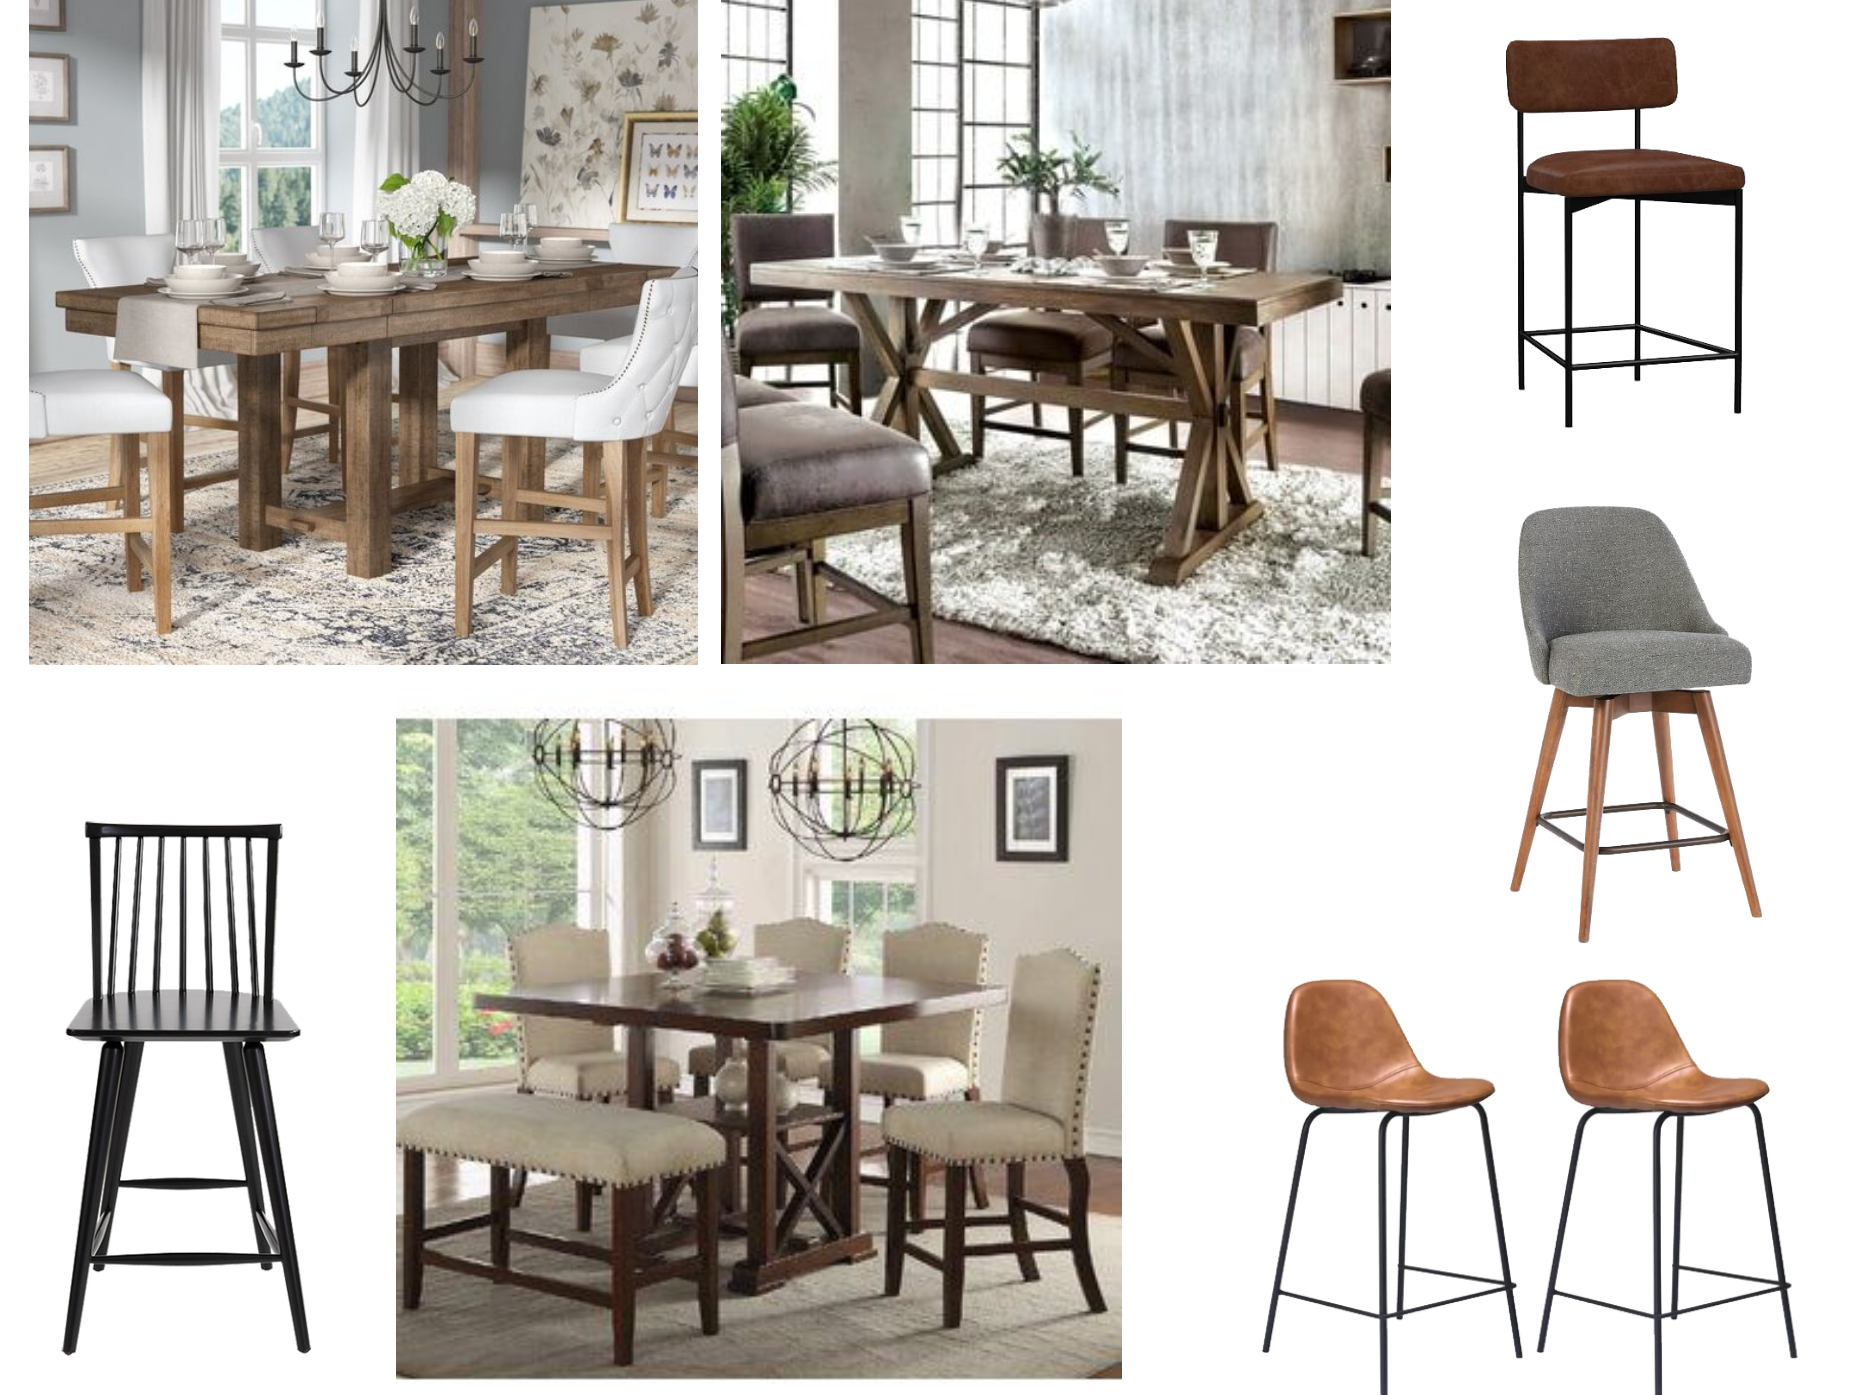 Download Dining Table Tall Chairs Background